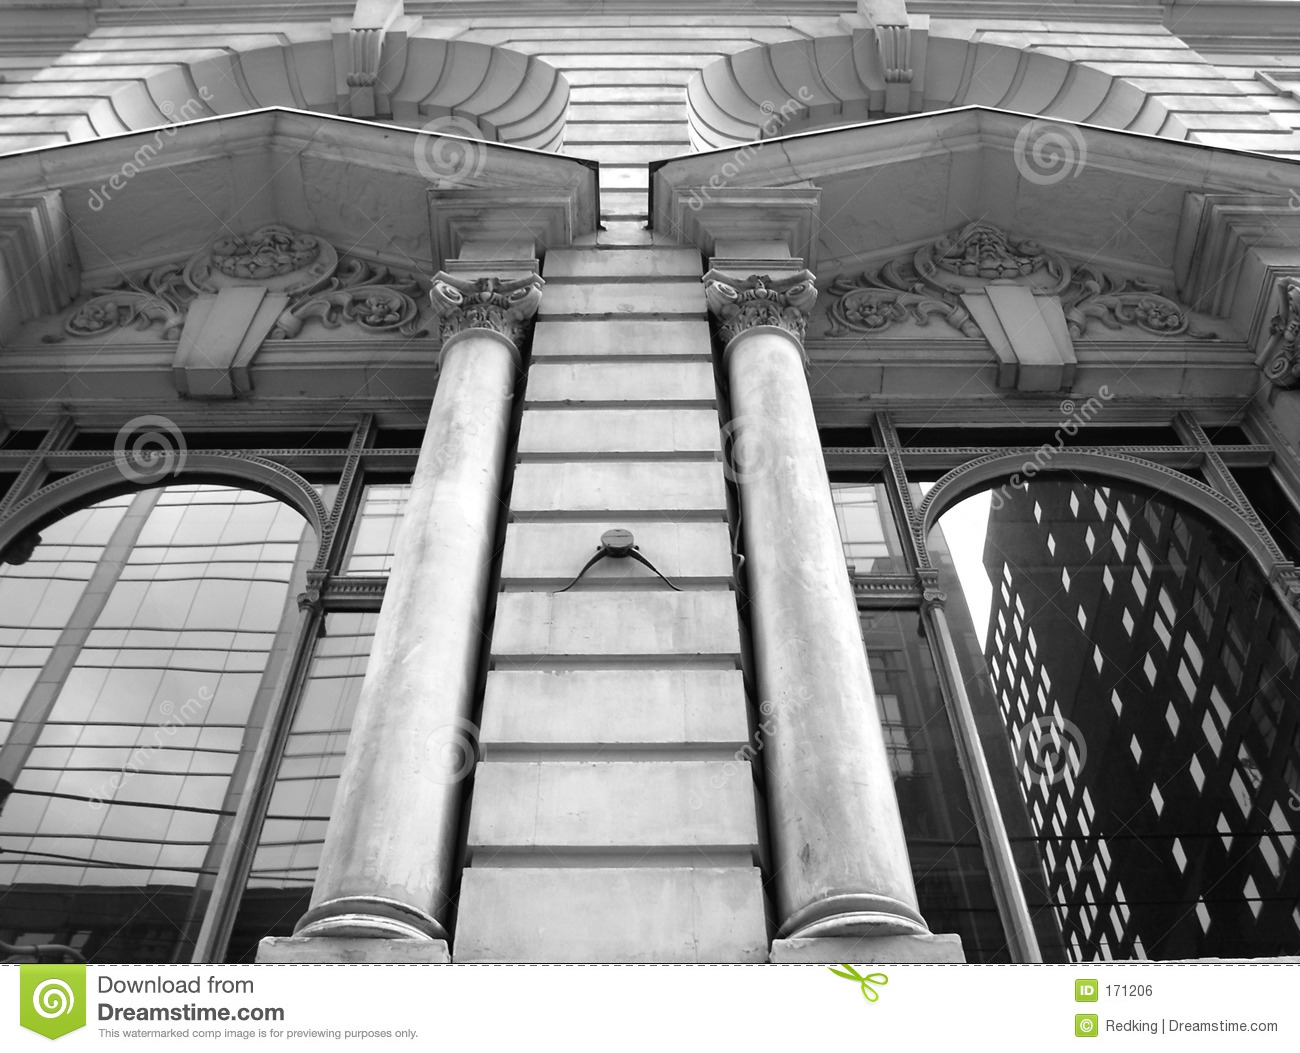 Stone Columns with windows that reflect the city